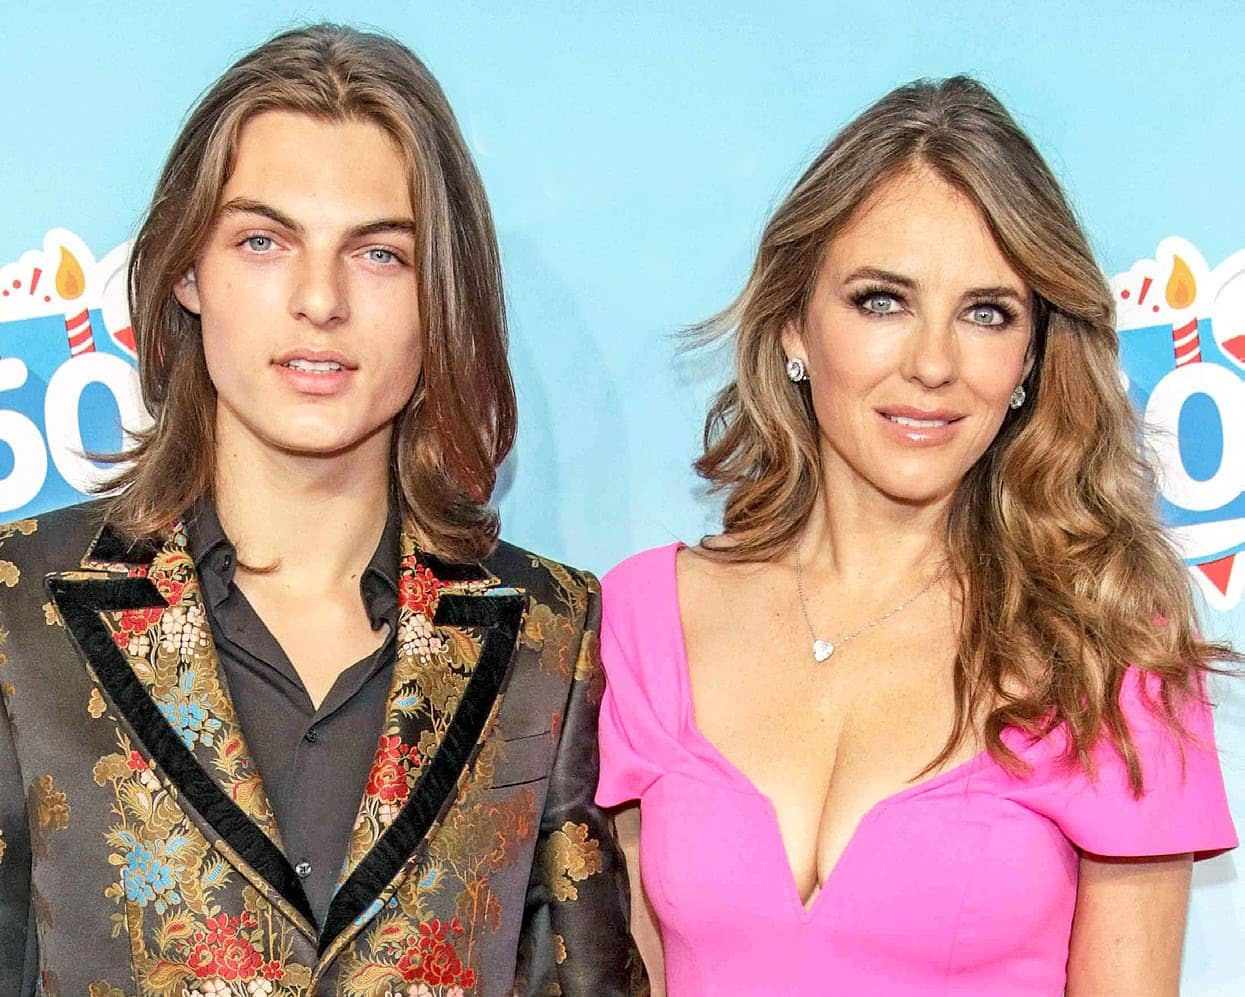 THE TRAGEDY THAT MADE DAMIAN HURLEY THE RICHEST TEENAGER IN THE WORLD